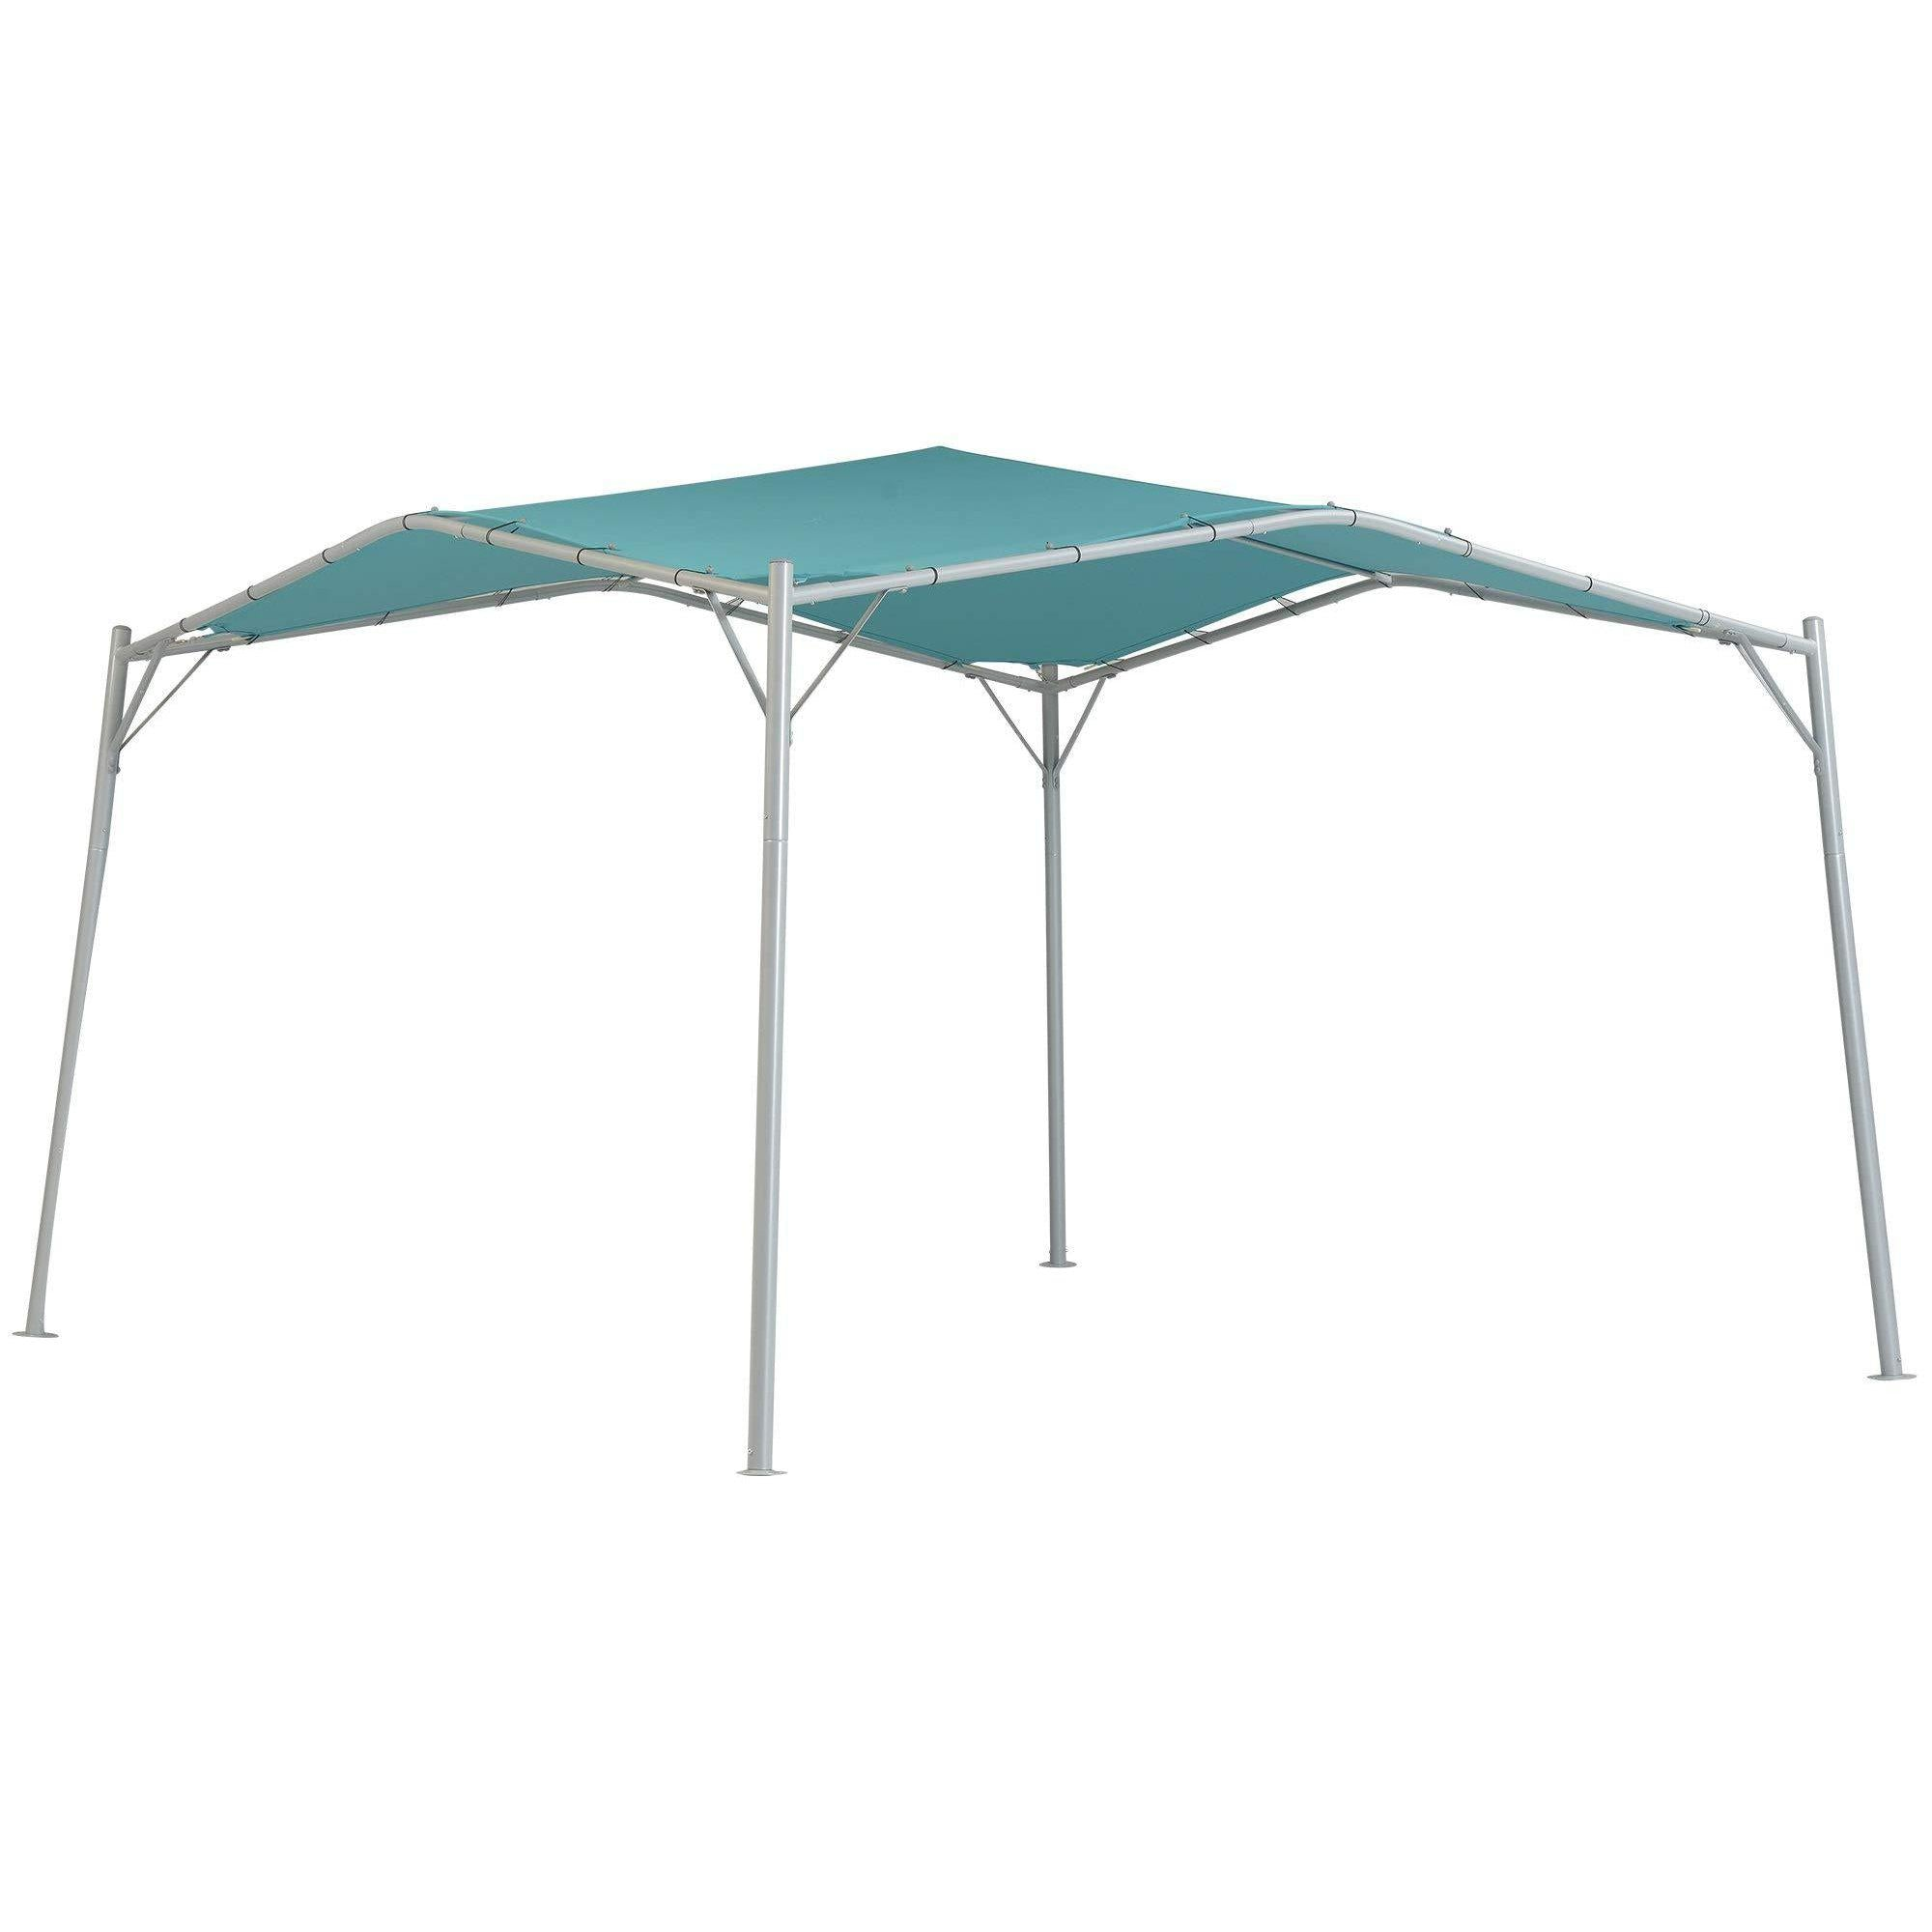 ShelterLogic Gazebo Series Monterey 12 x 12-Foot Easy Assembly Portable UV Protection Outdoor Canopy, Teal